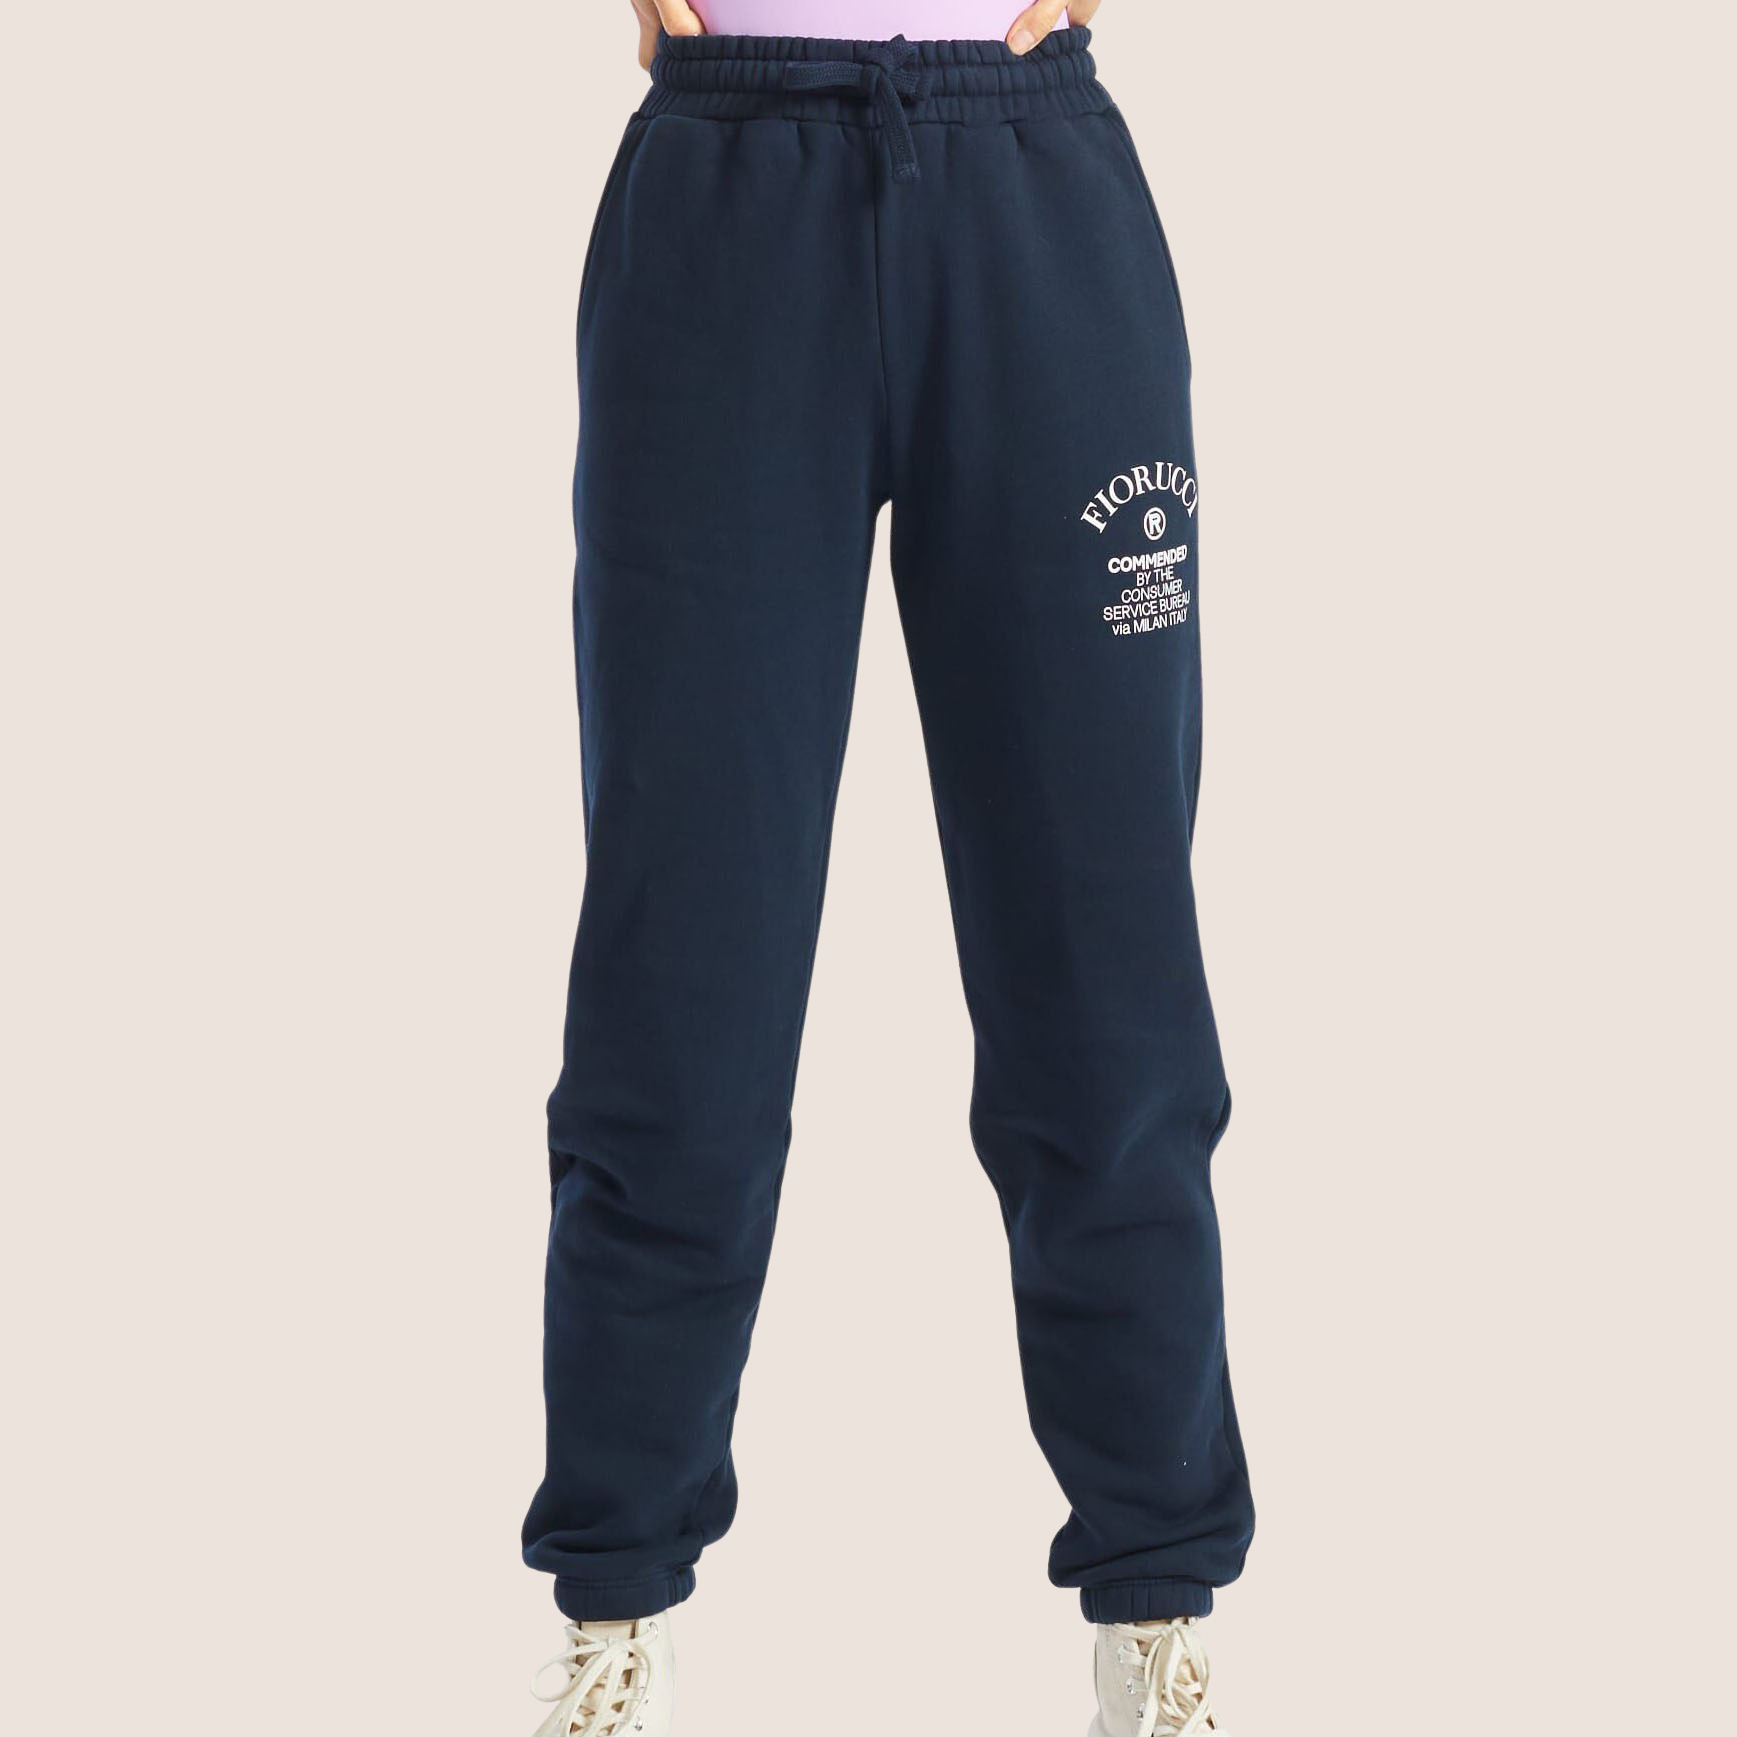 Commended Trackpants